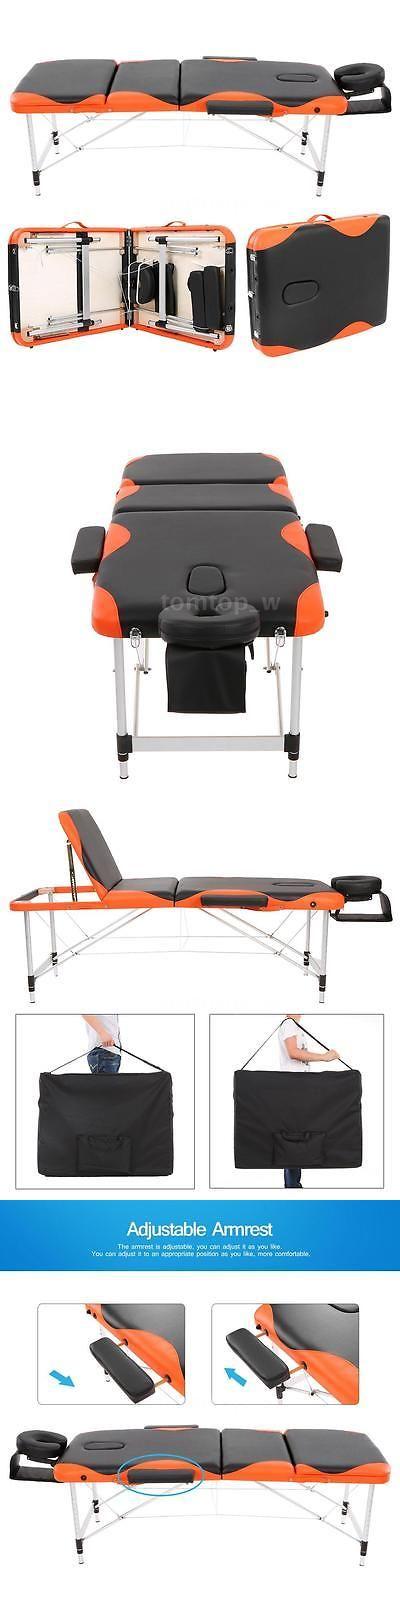 Massage Tables and Chairs: Black 2 Pad 73 Massage Table Folding Aluminium Alloy Waterproof U7t1 -> BUY IT NOW ONLY: $82.11 on eBay!